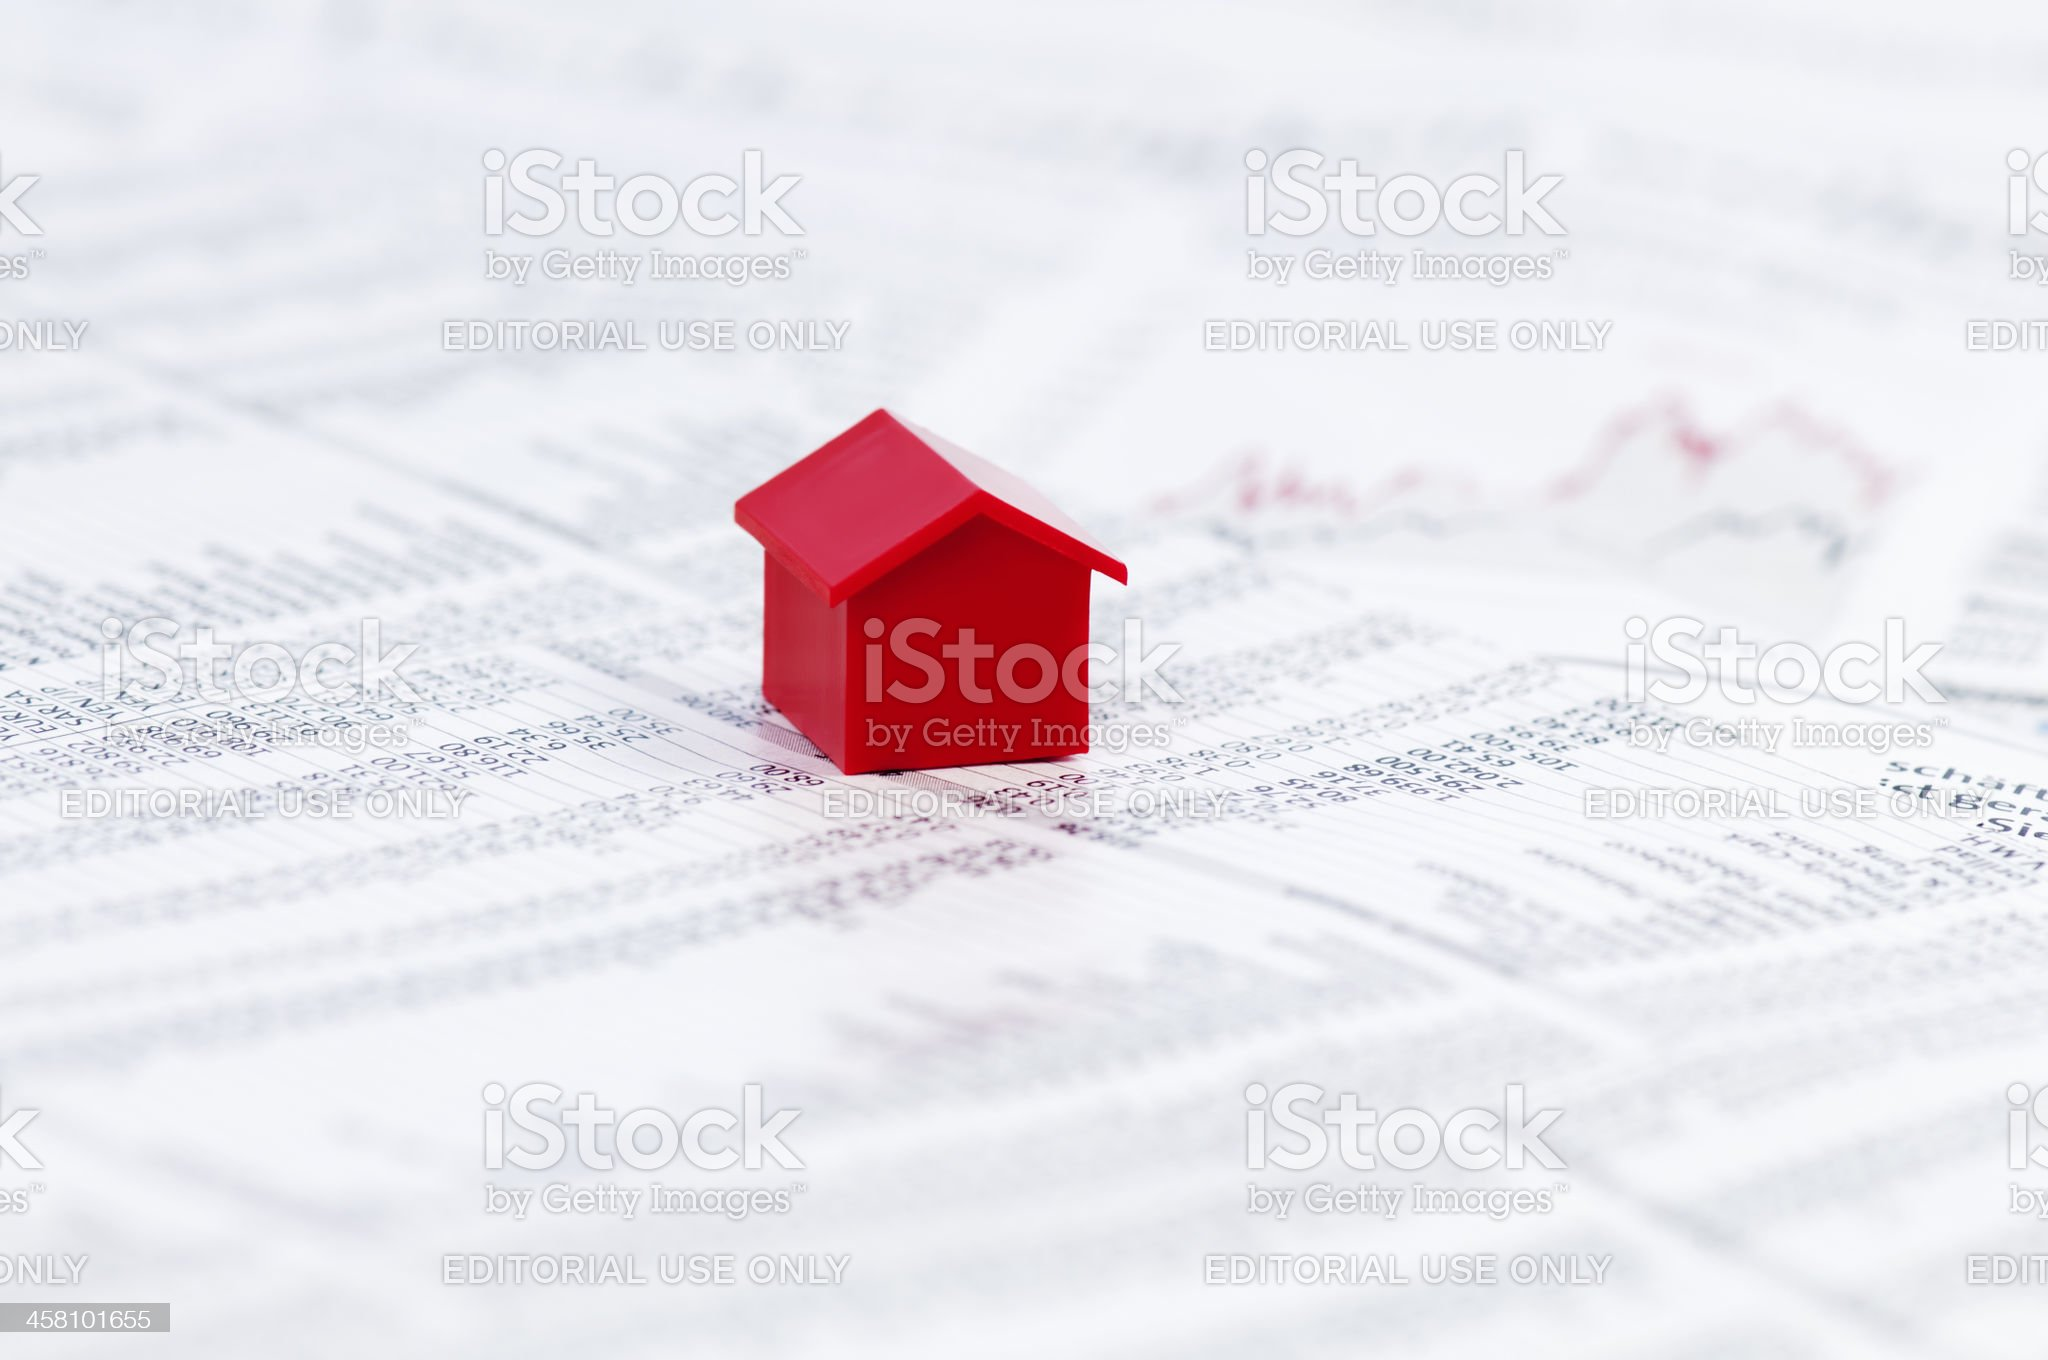 Page of stock market prices with red model house royalty-free stock photo